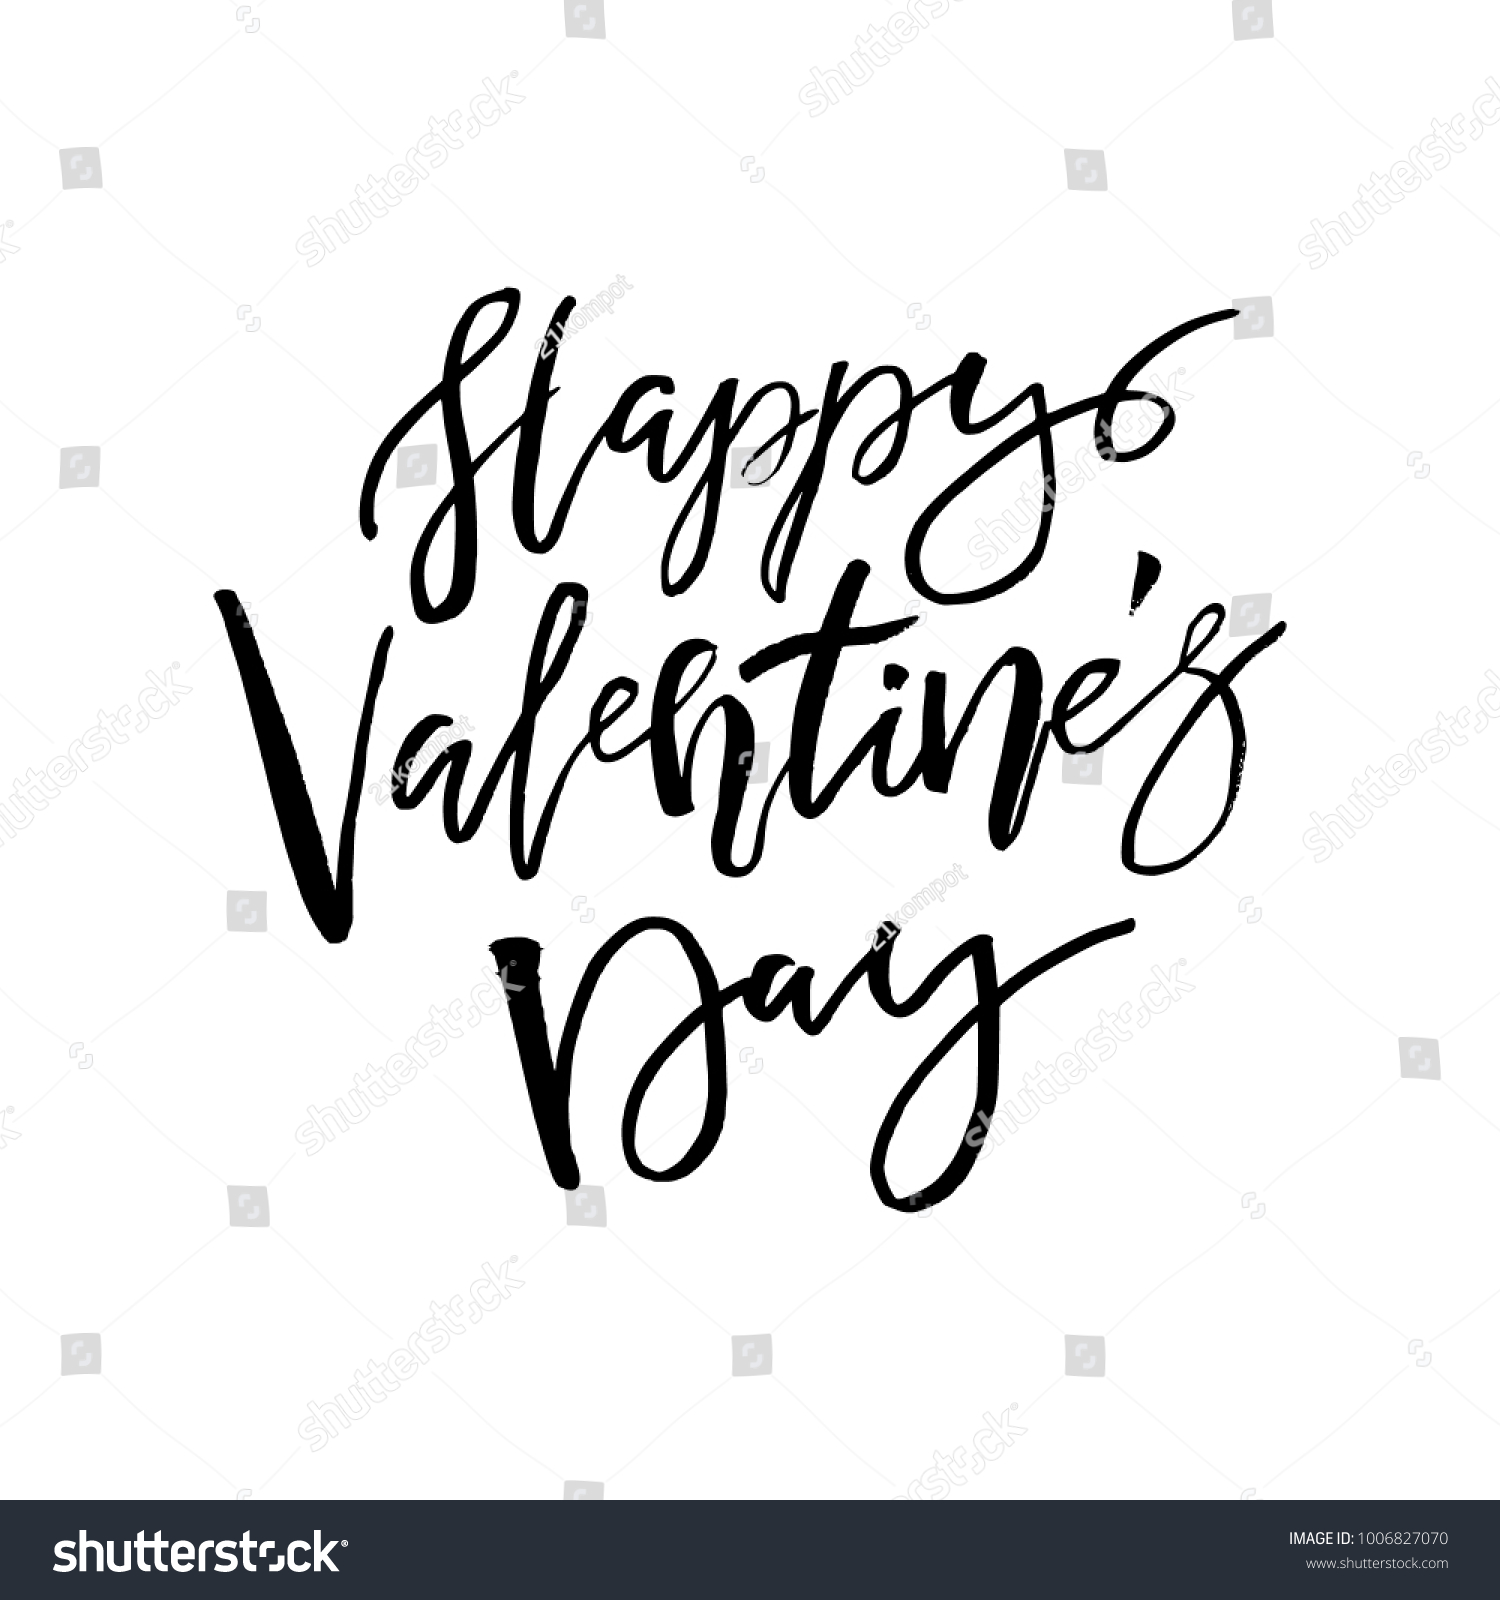 Happy valentines day card calligraphy text stock vector 1006827070 happy valentines day card with calligraphy text on white template for greetings congratulations kristyandbryce Image collections